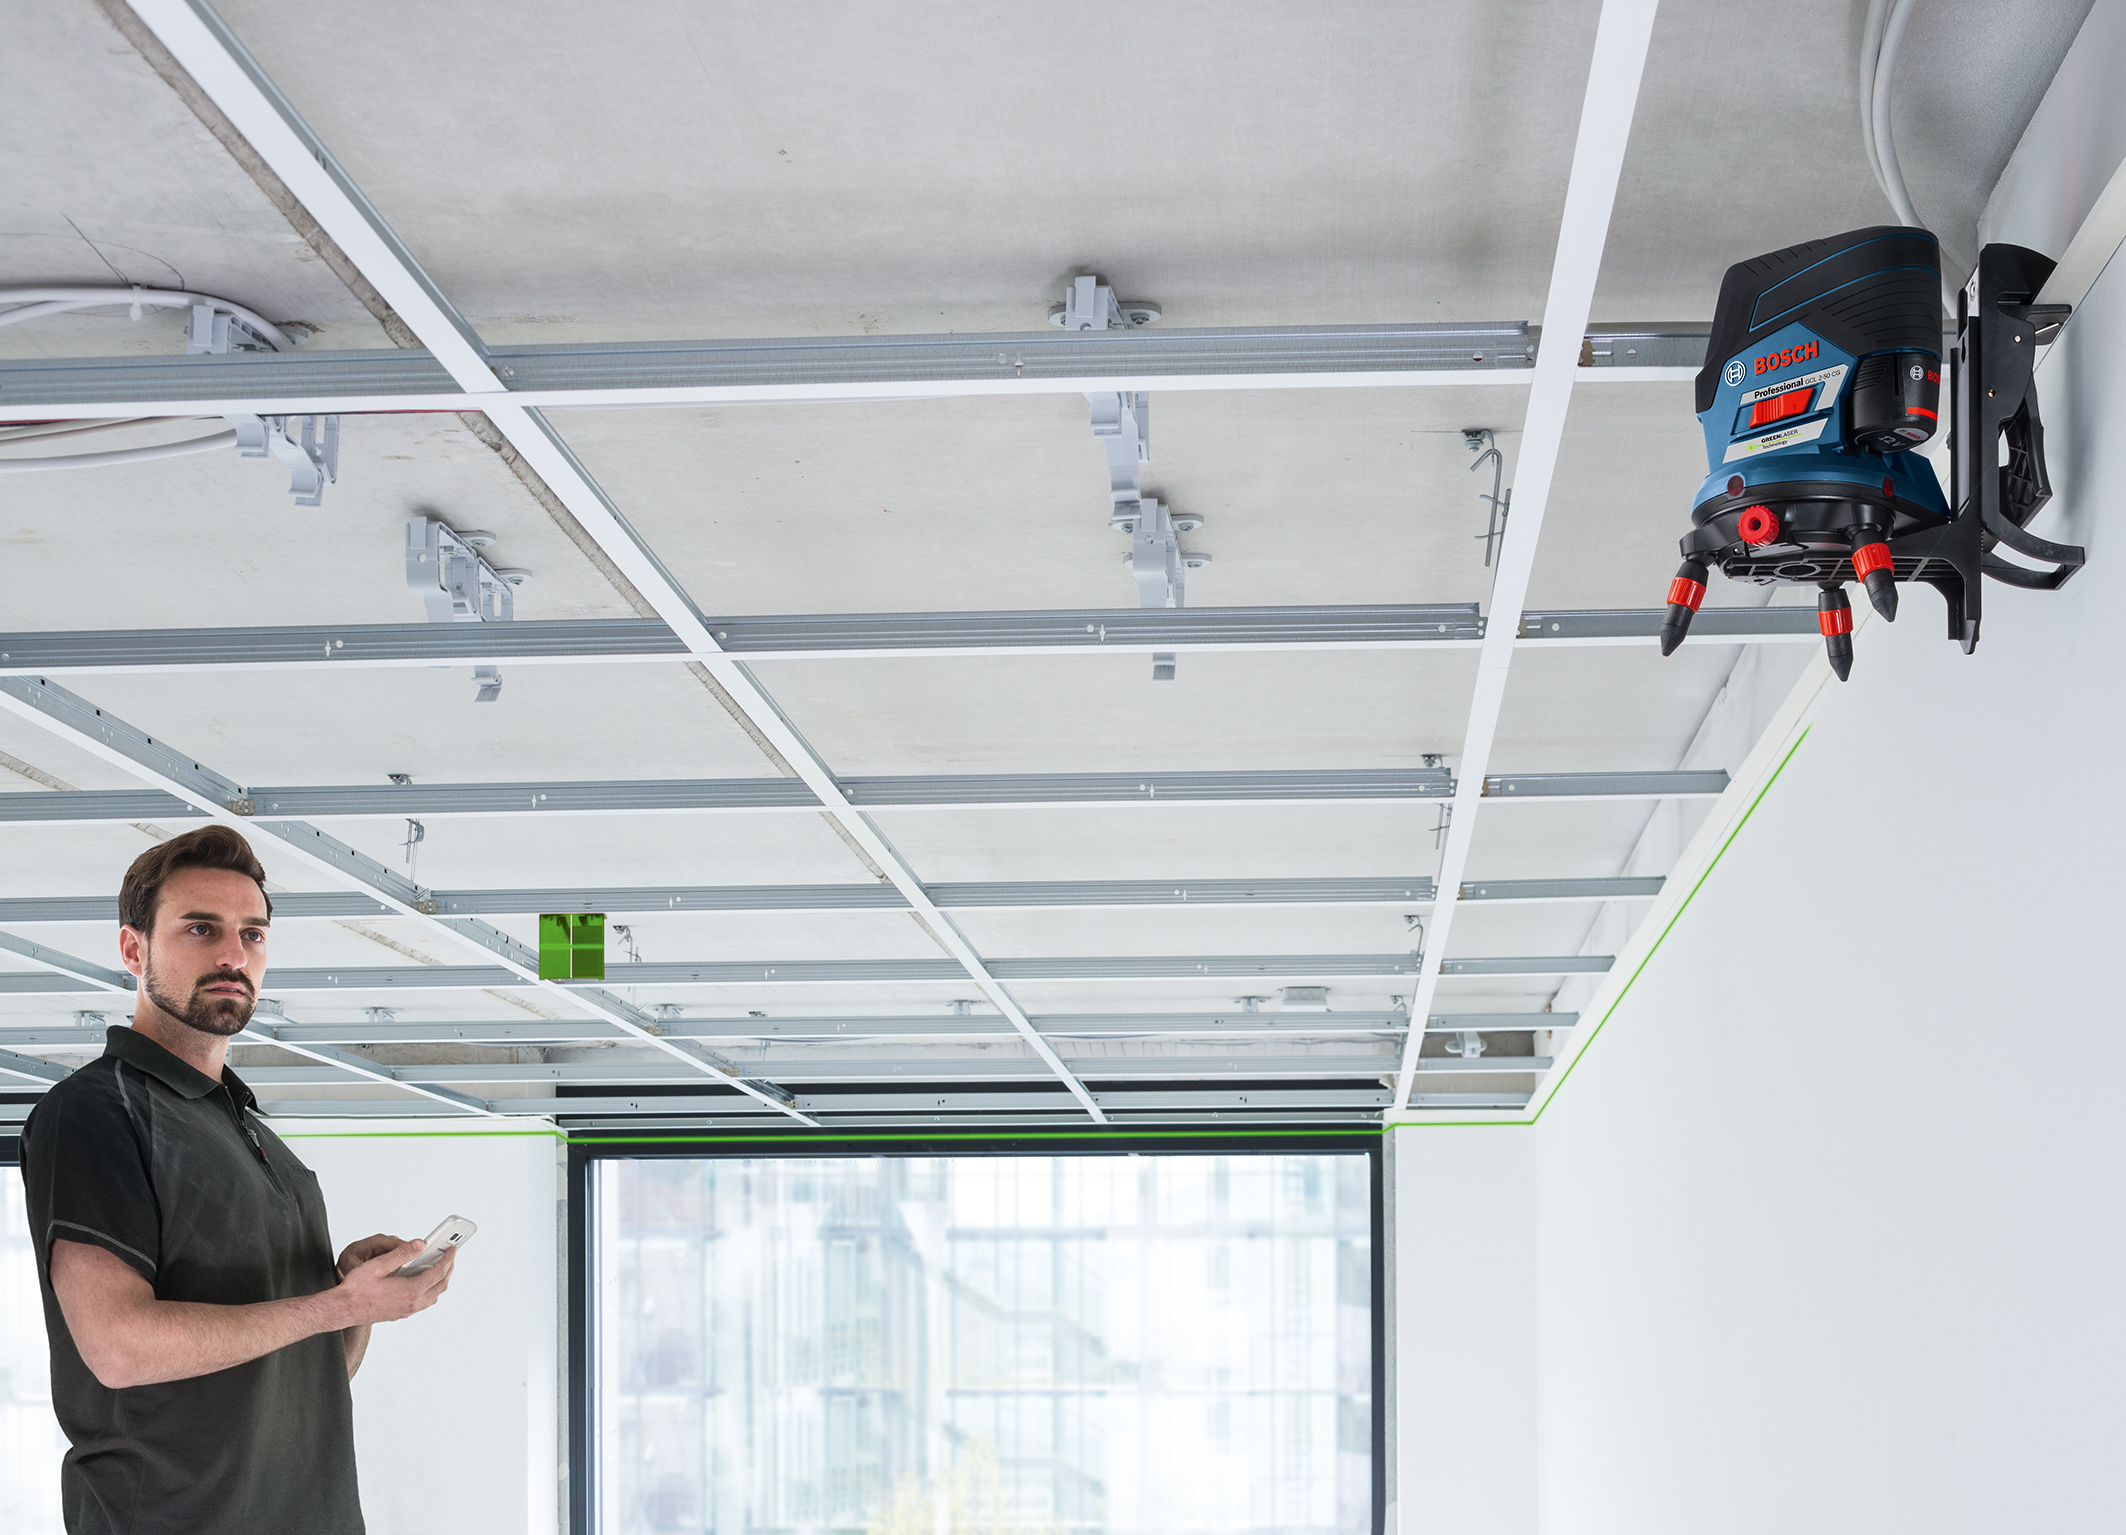 Four times more visible thanks to green laser lines: Bosch combi laser GCL 2-50 CG Professional